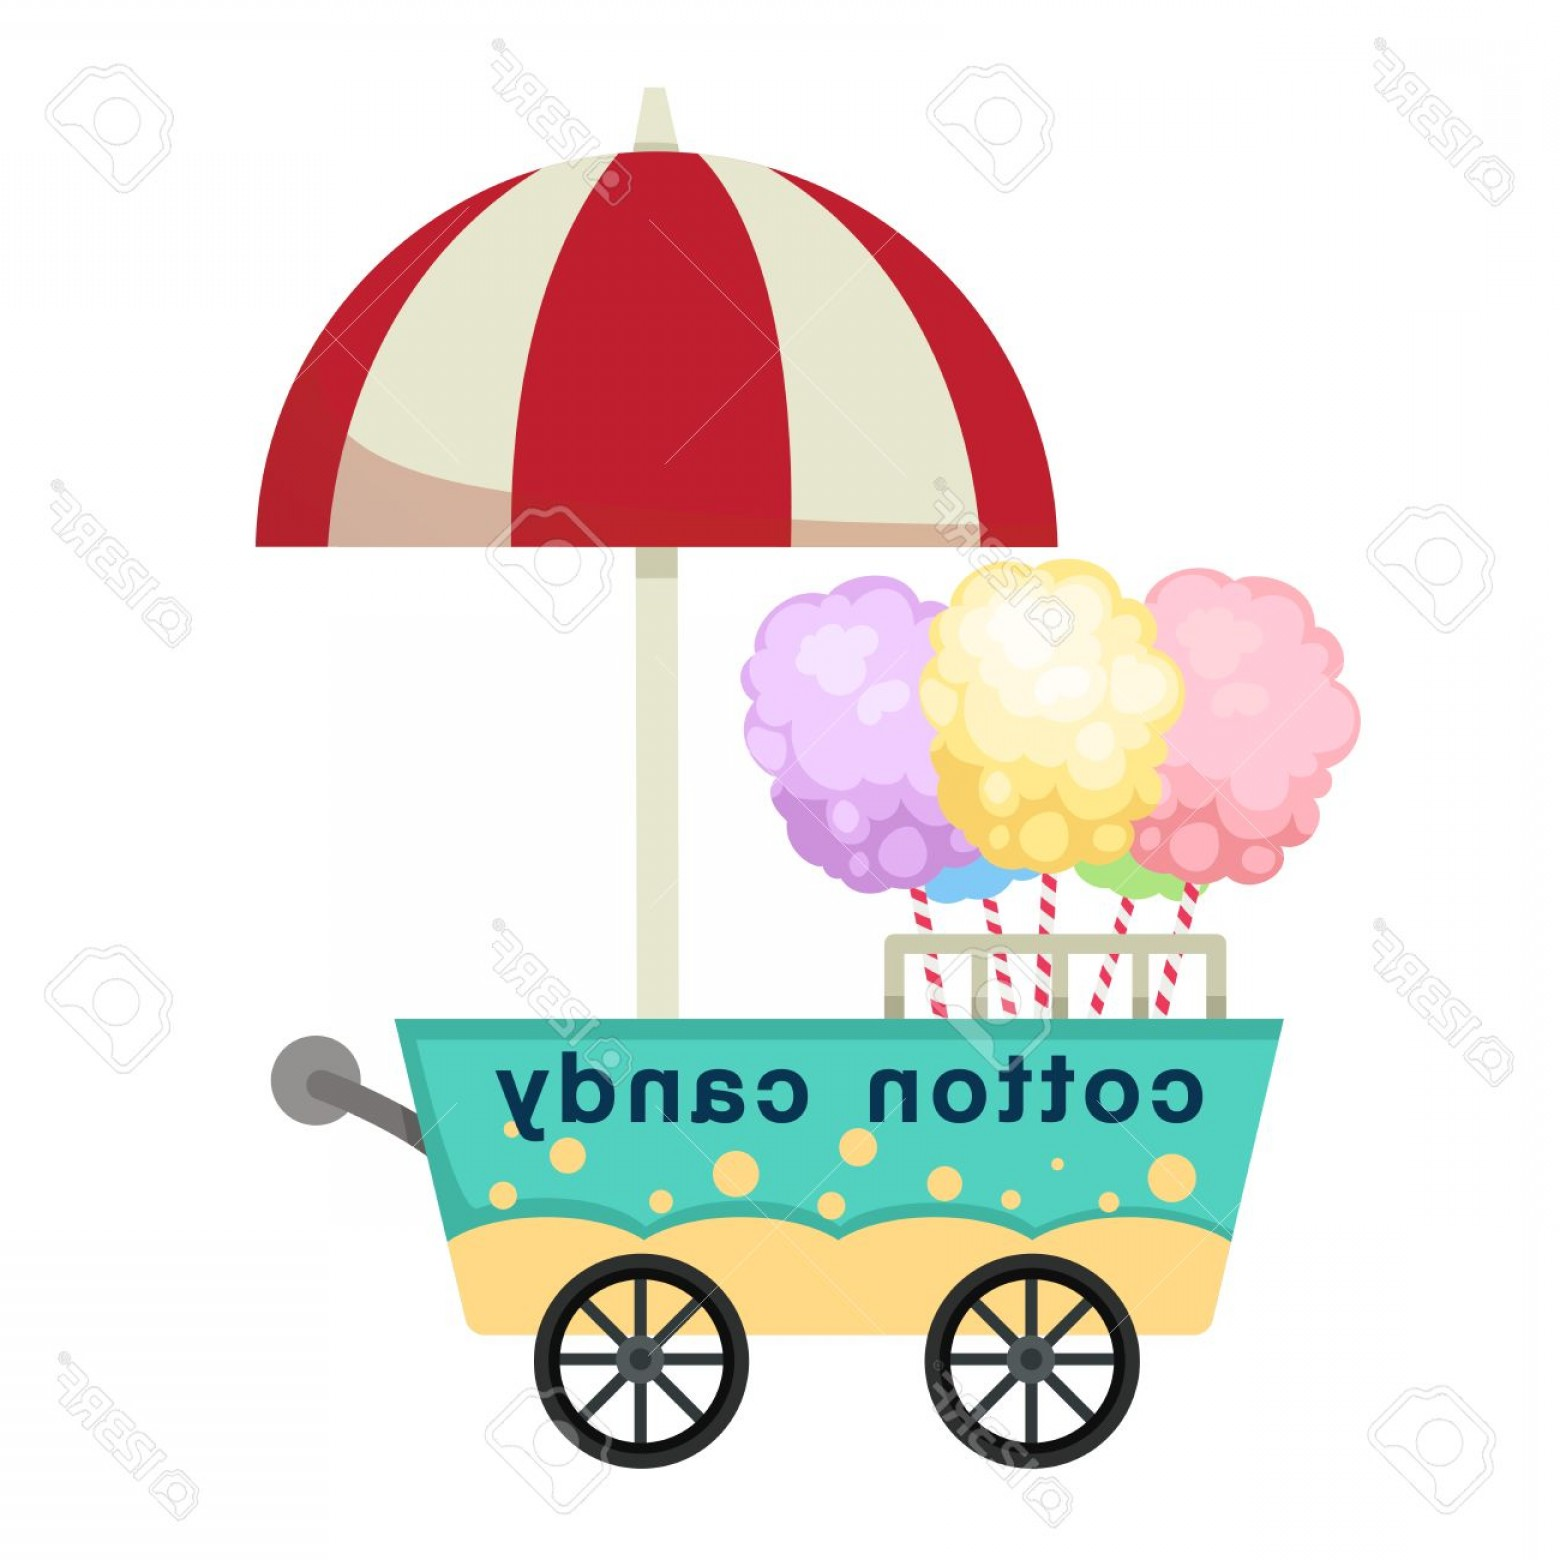 Candy Seller Vector: Photostock Vector Cart Stall And Cotton Candy Vector Illustration On White Background